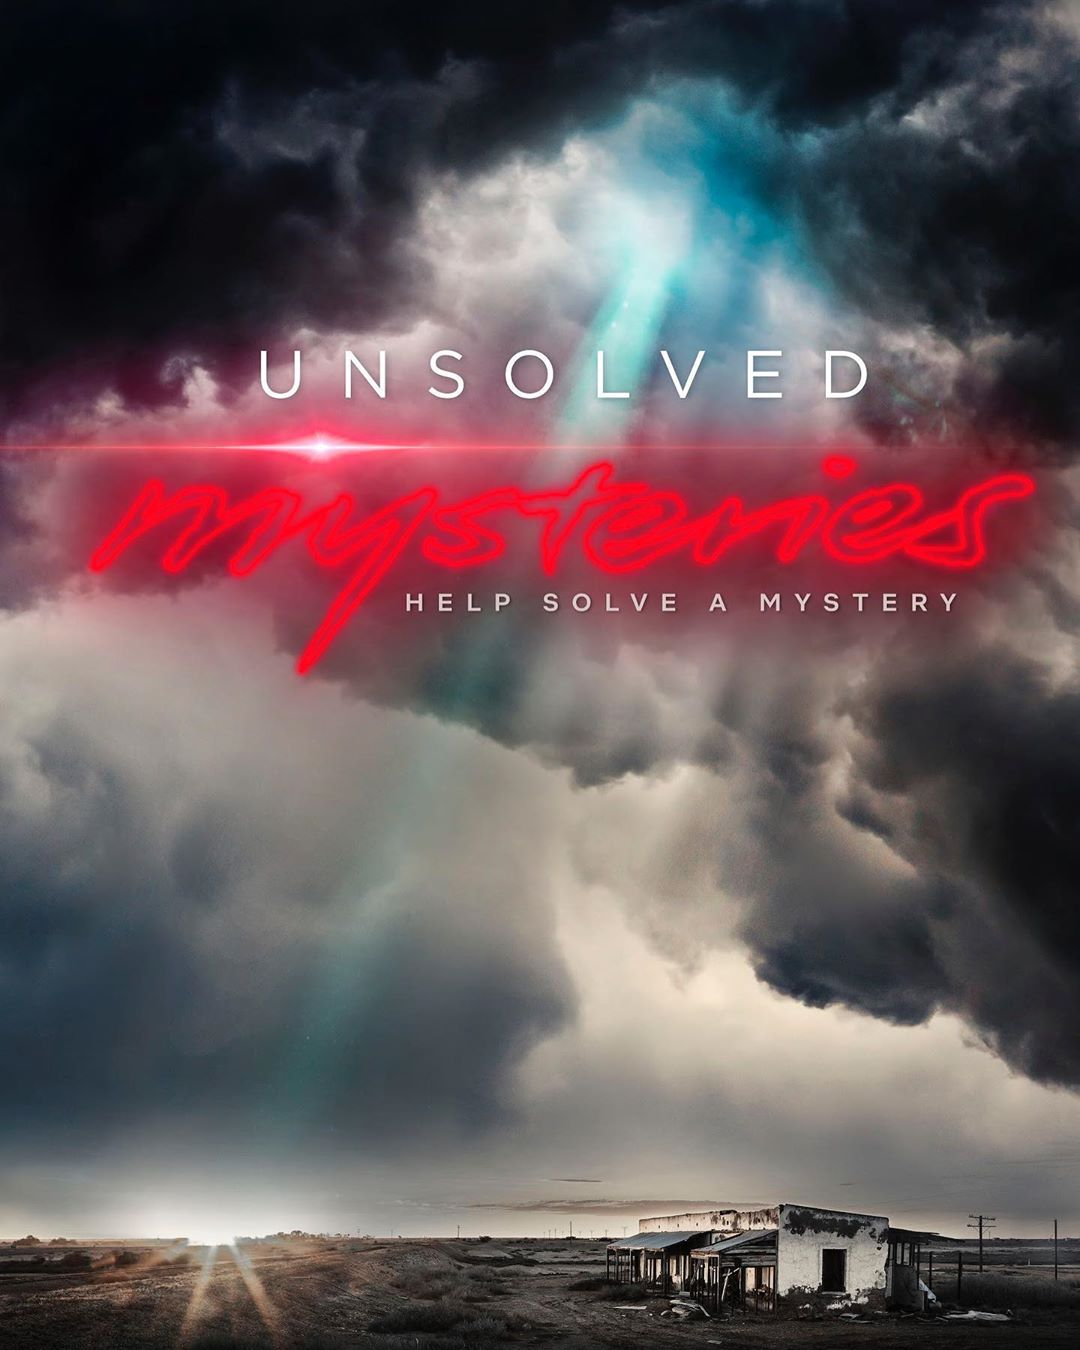 Netflix Releases Trailer For Unsolved Mysteries Reboot